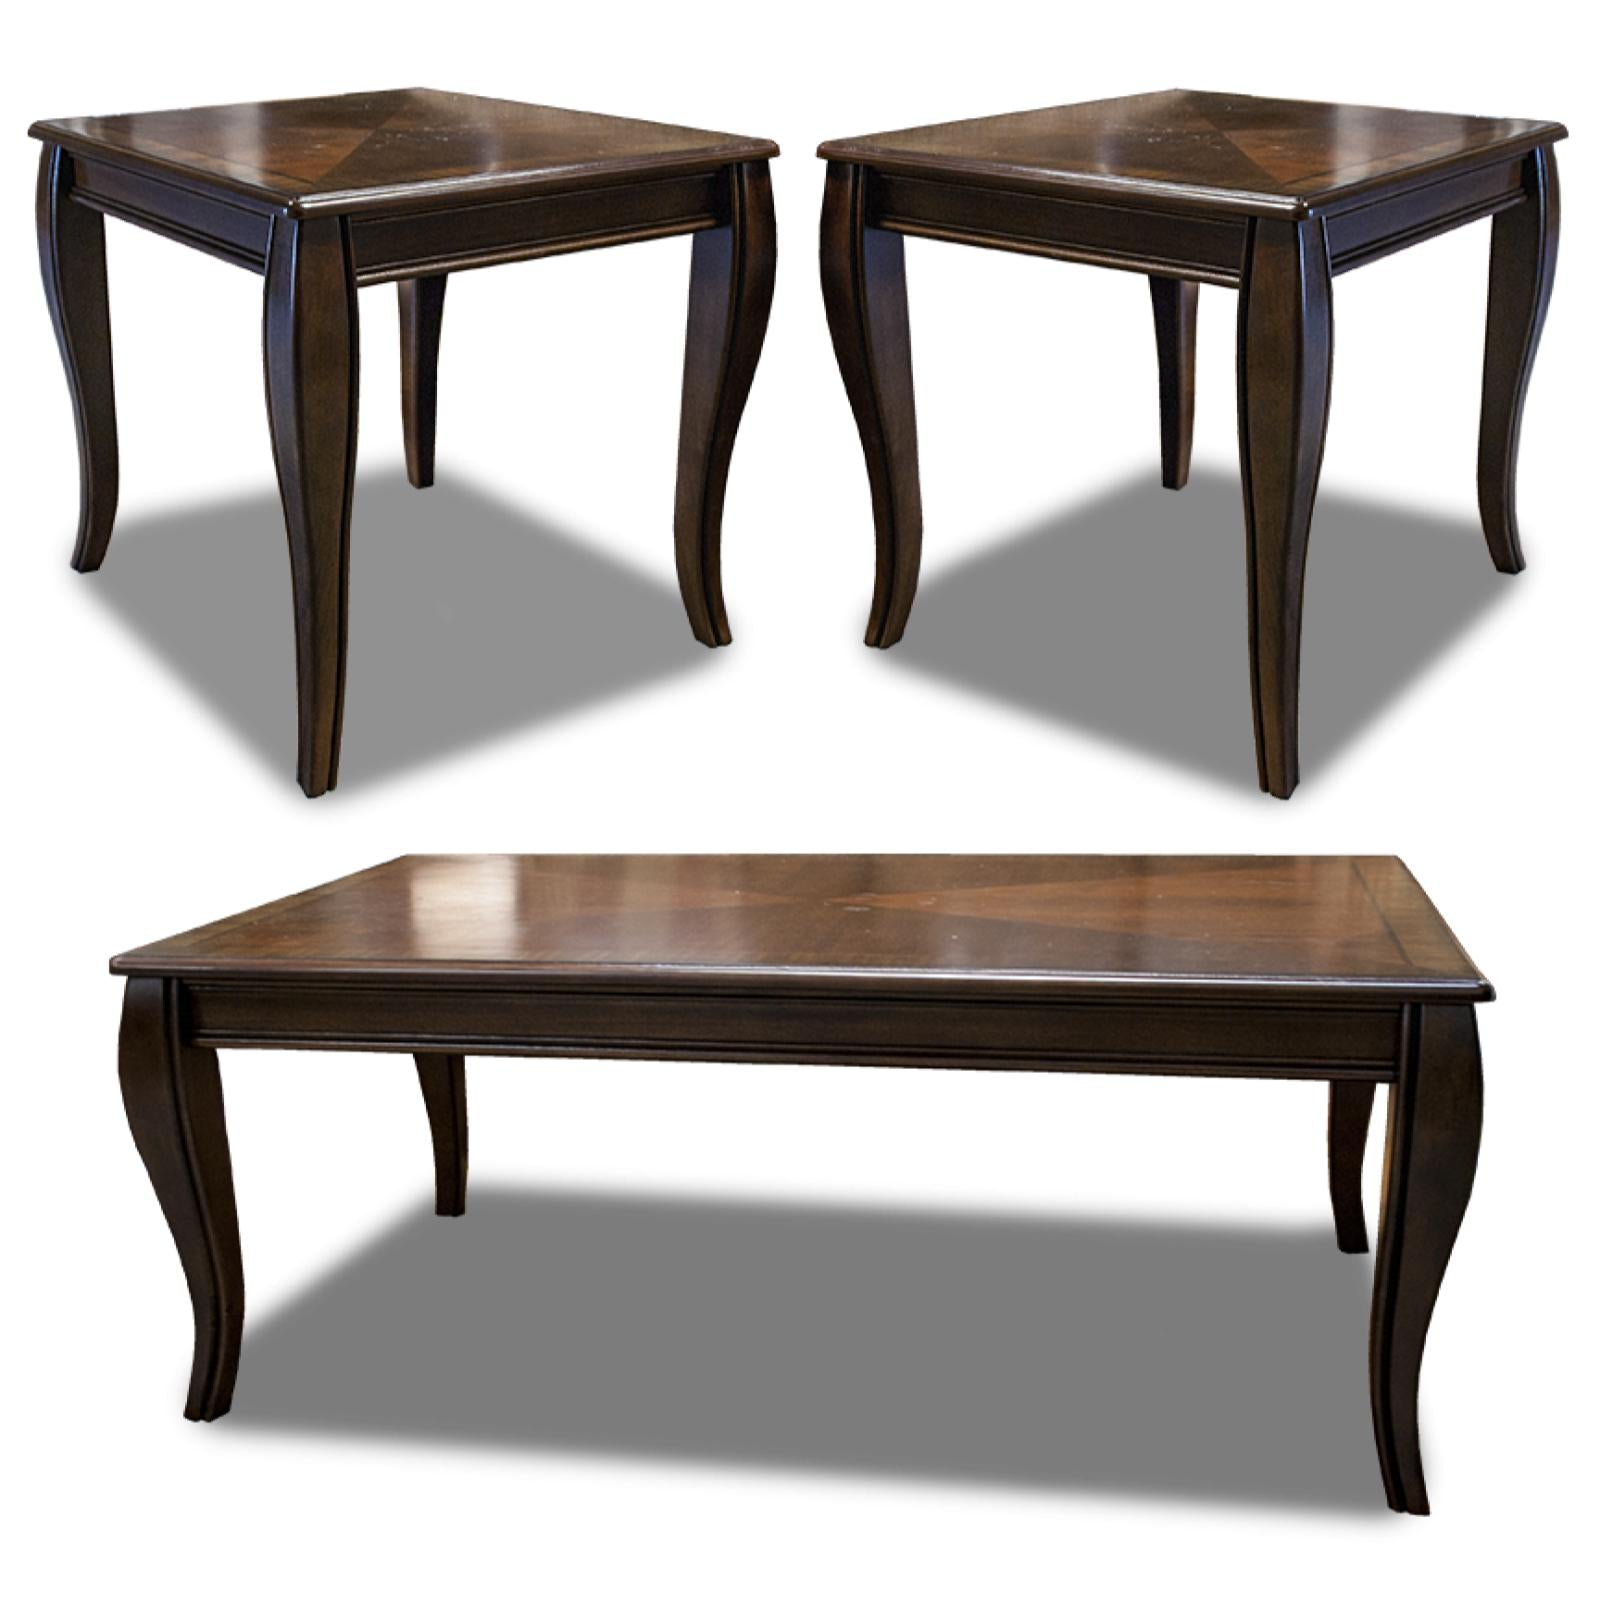 Mattie PC Occasional Table Set - Rectangular cocktail table by ashley furniture